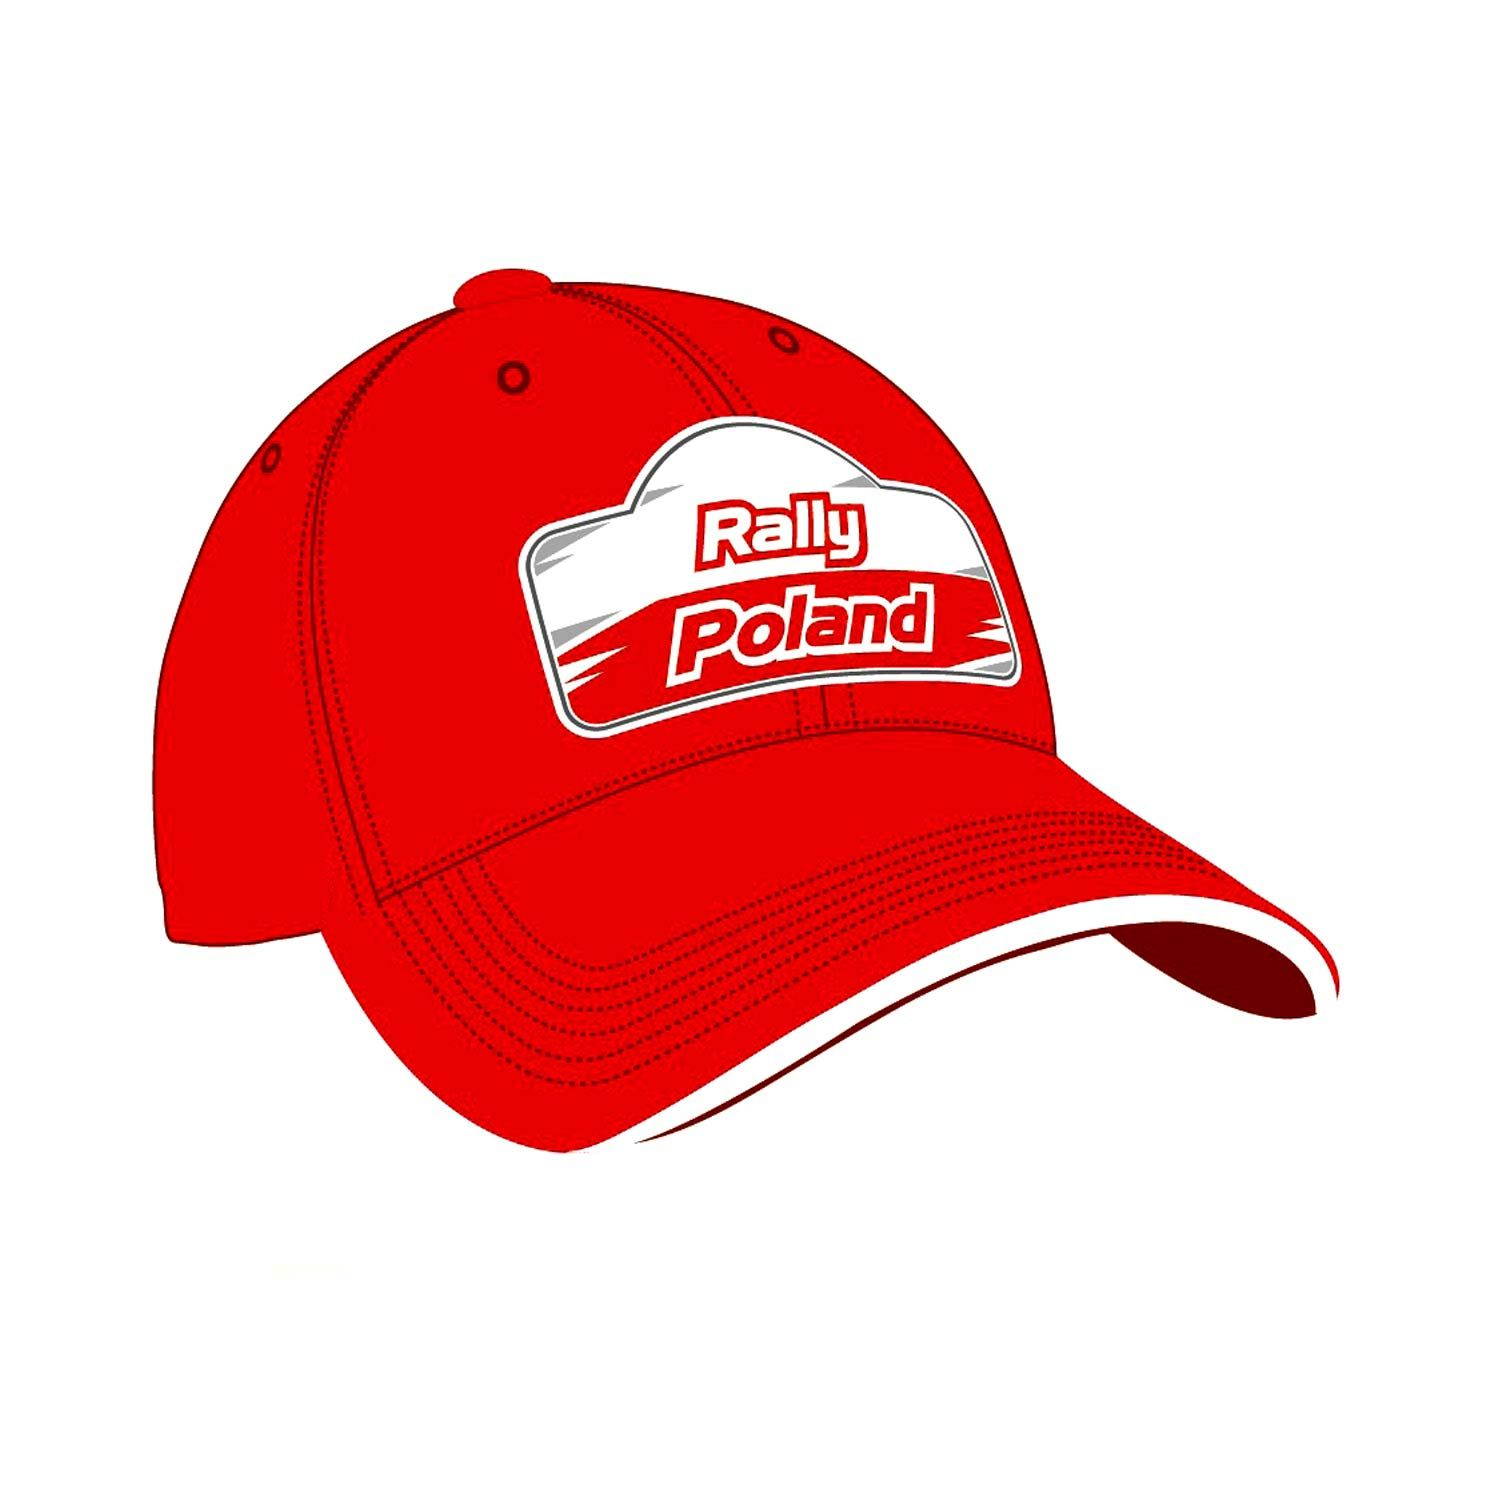 fcf001cec 2019 Rally Poland ERC Mens Logo Baseball Cap red | Caps \ Adults |  Rallymerchandise.eu